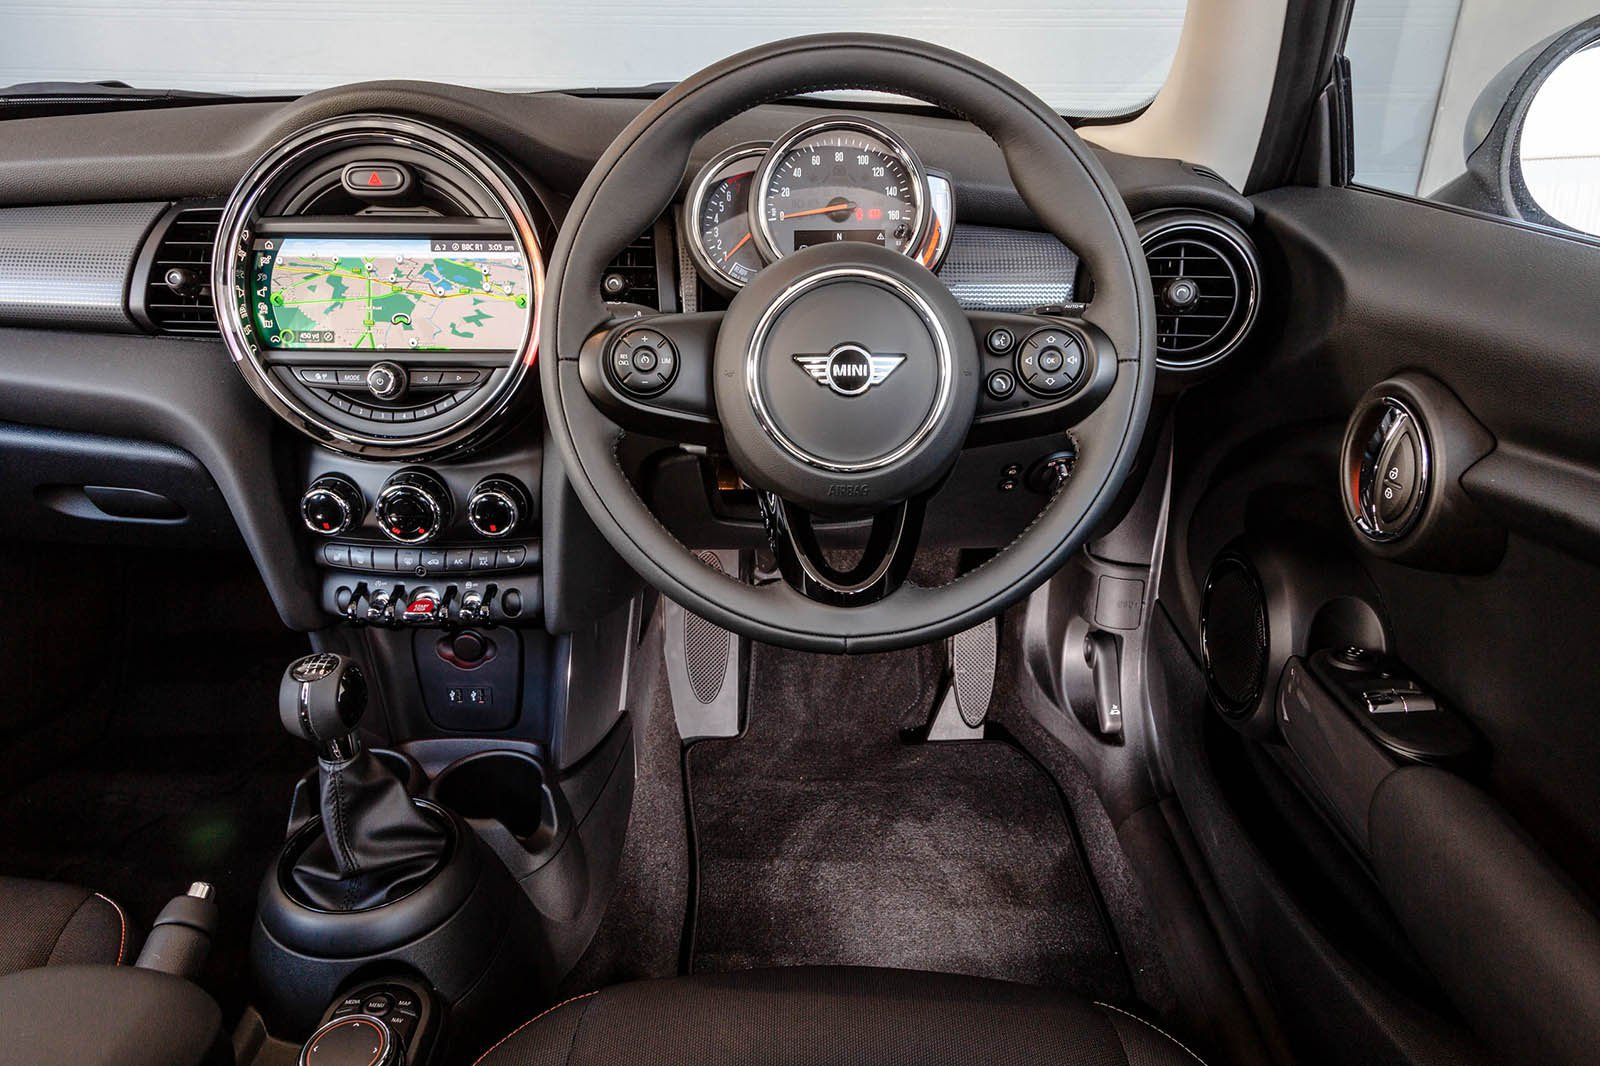 2018 Mini 3dr 1.5 Cooper auto - interior